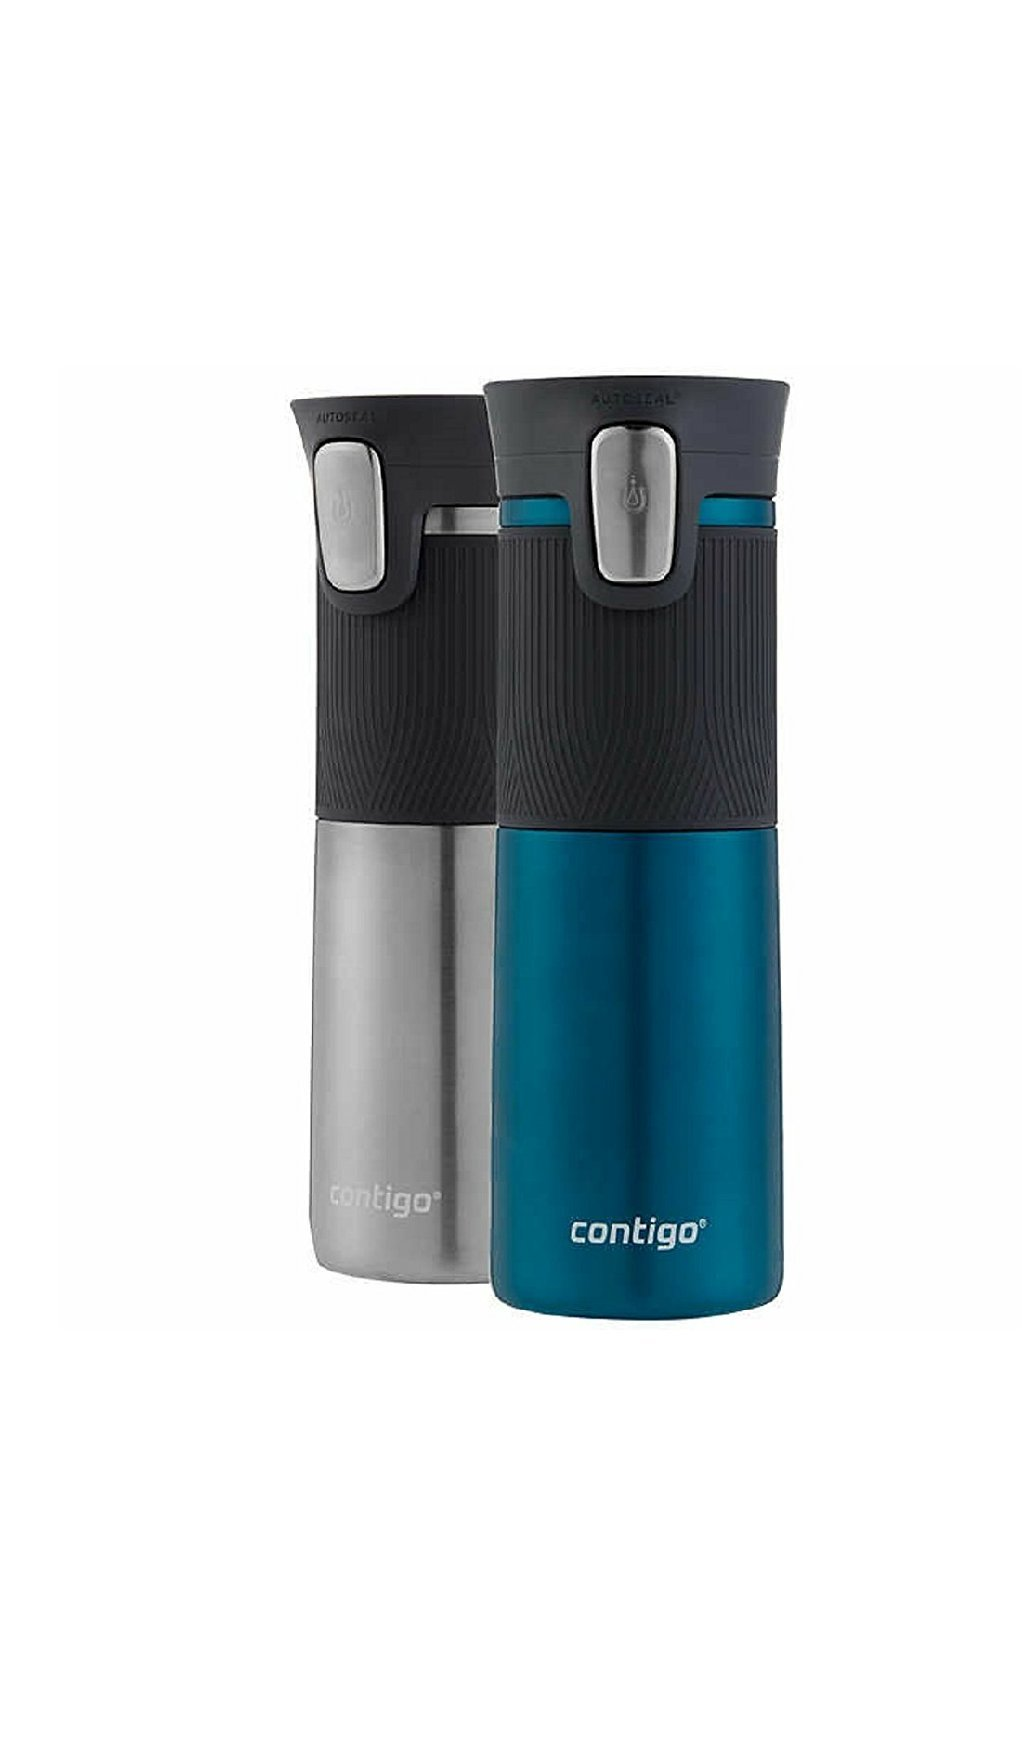 Contigo AUTOSEAL Vacuum Insulated Stainless Steel Travel Mugs (2, Biscay Bay/ Stainless Steel)